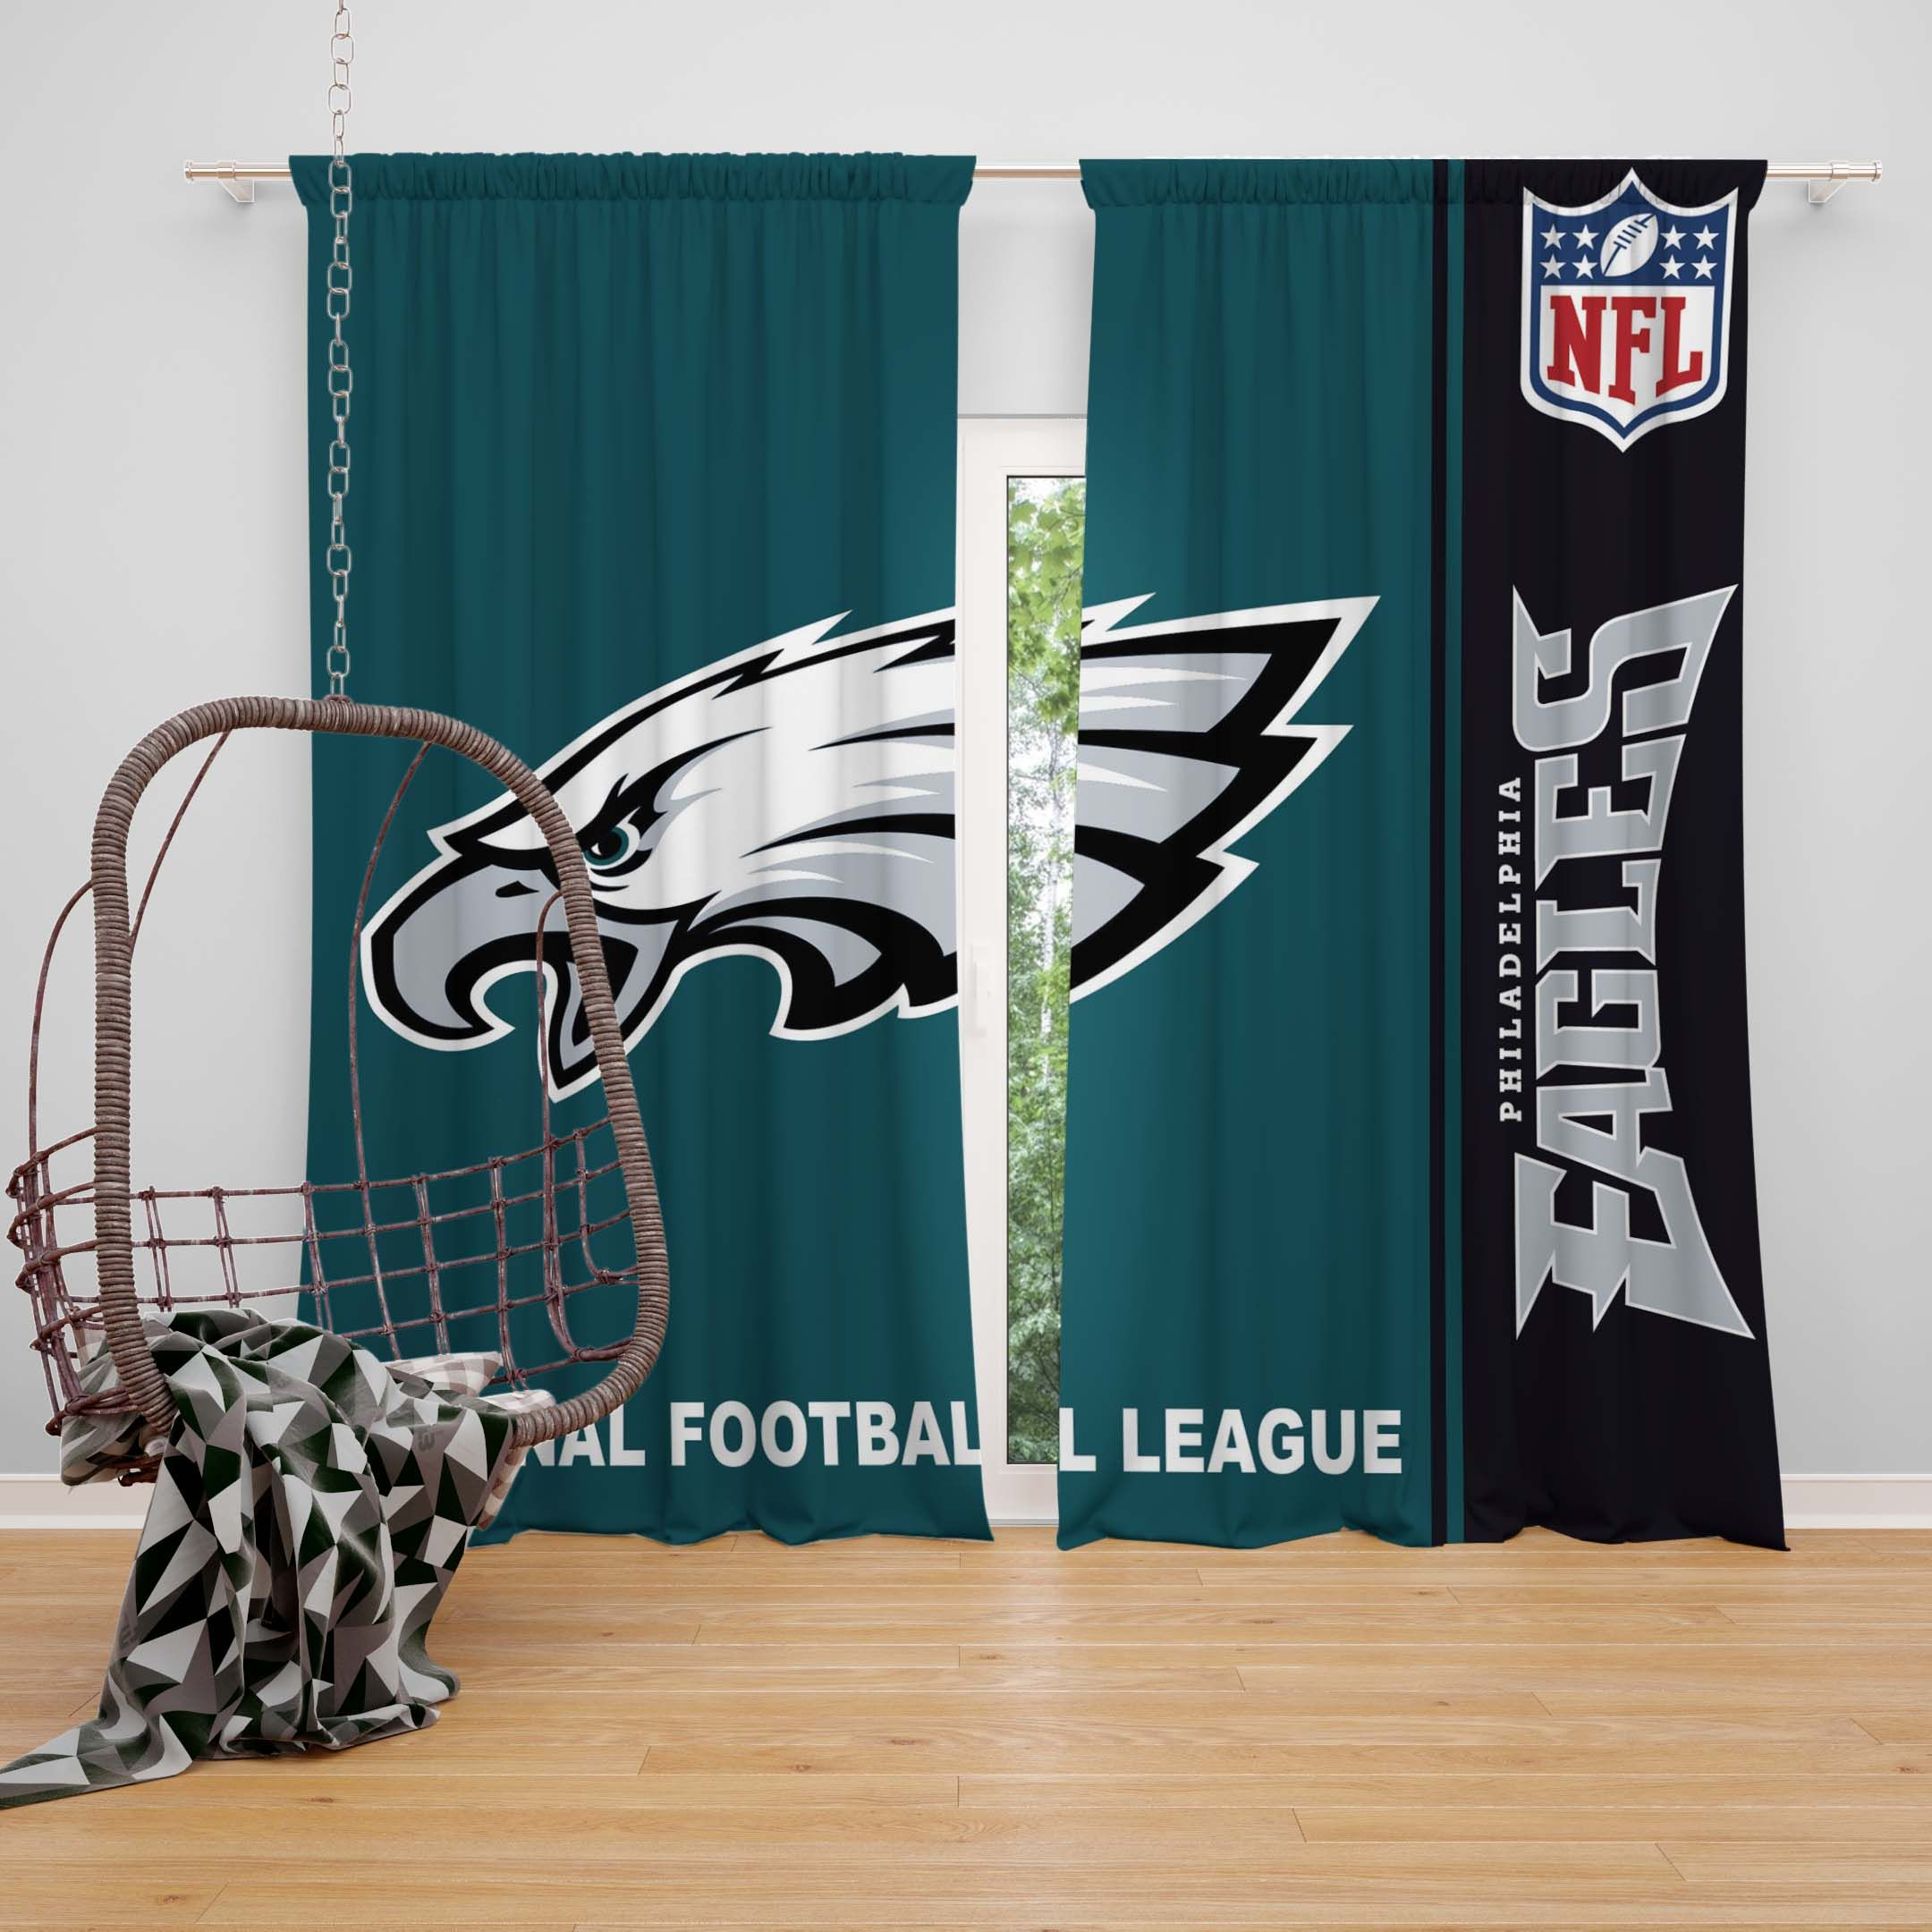 42d64f98 NFL Philadelphia Eagles Bedroom Curtain | NFL American Football ...